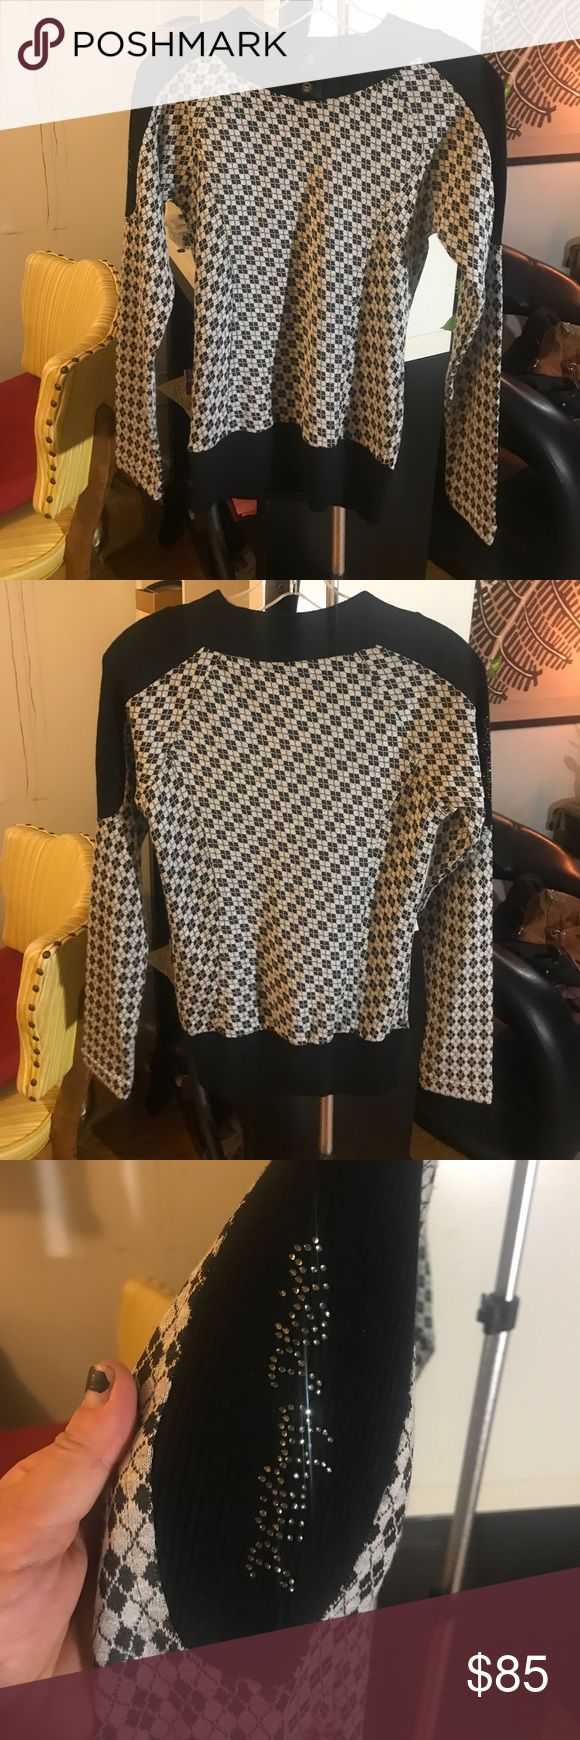 Phillipp Plein geometric black and grey sweater Phillipp Plein, geometric, black and grey, sweater with skull buttons at neck and crystal embellished logo on right shoulder. No flaws! Like brand new. Phillipp Plein Tops